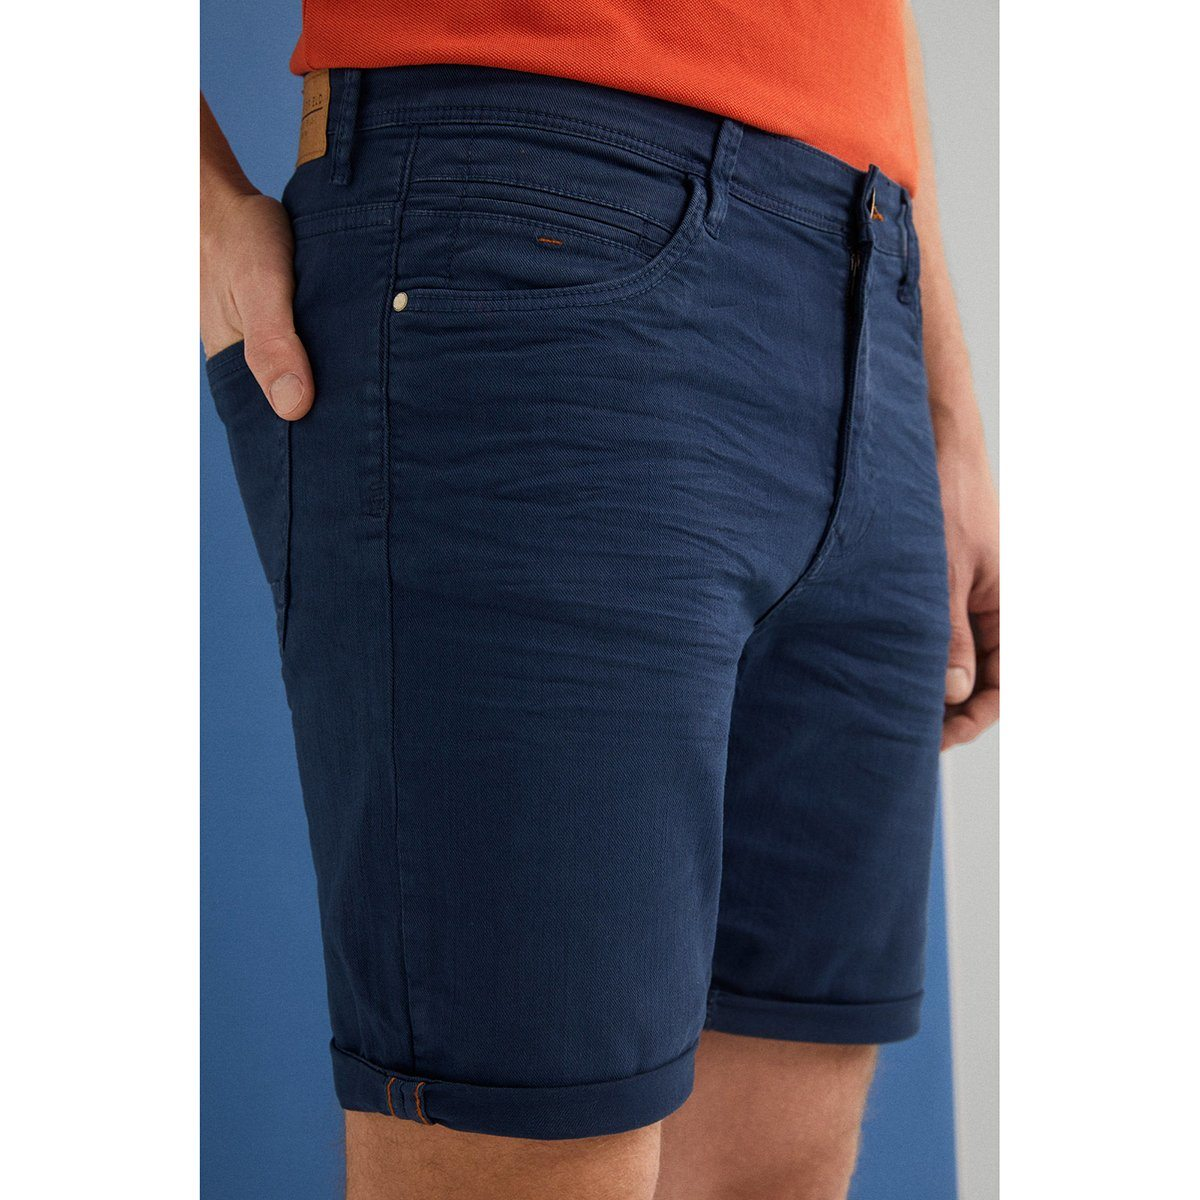 SF-blue steel 'slim fit' stretch bermuda short (962)